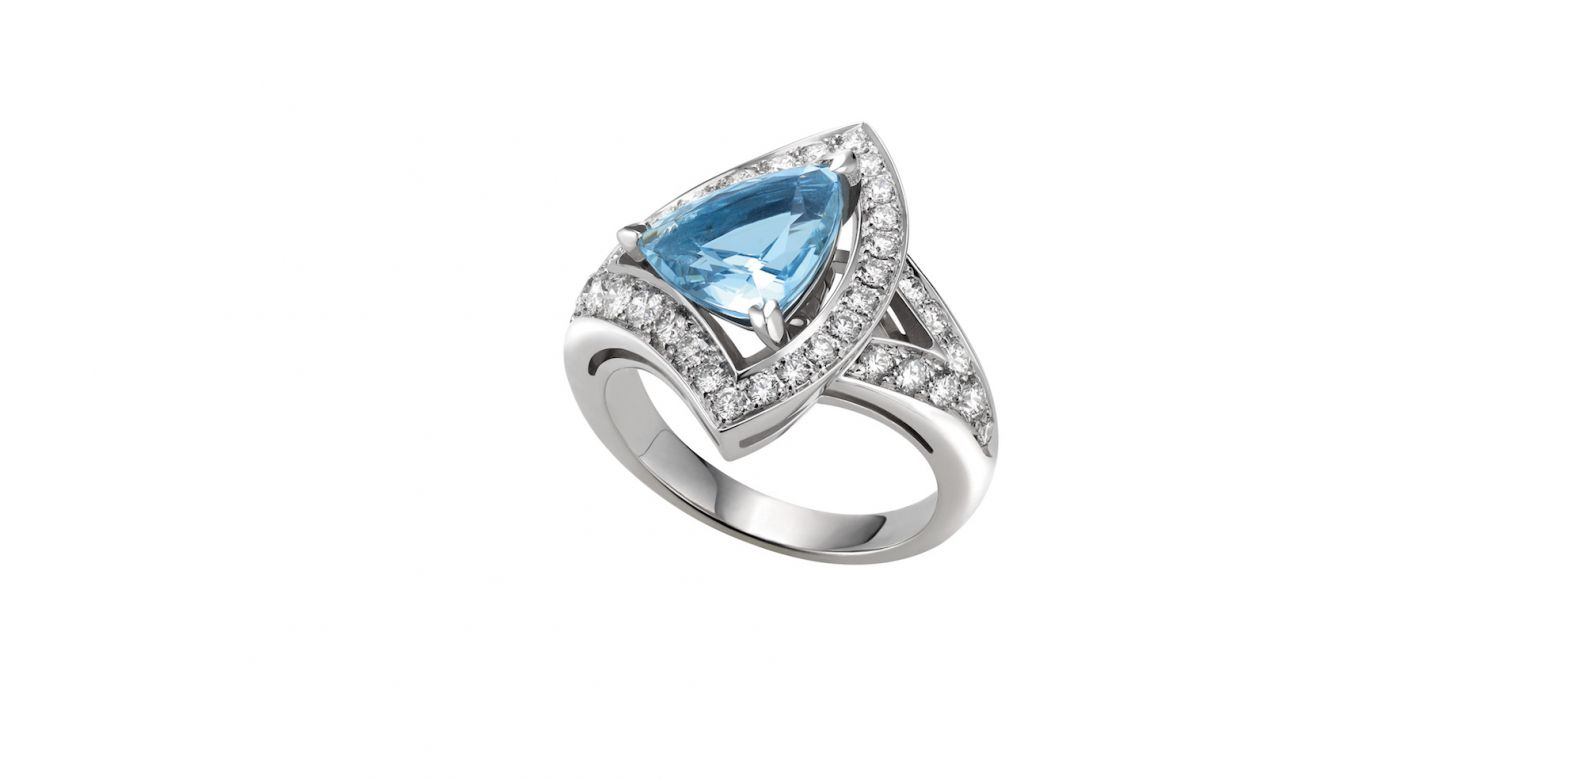 Ring in white gold with aquamarine and pavé diamonds (0.68ct)